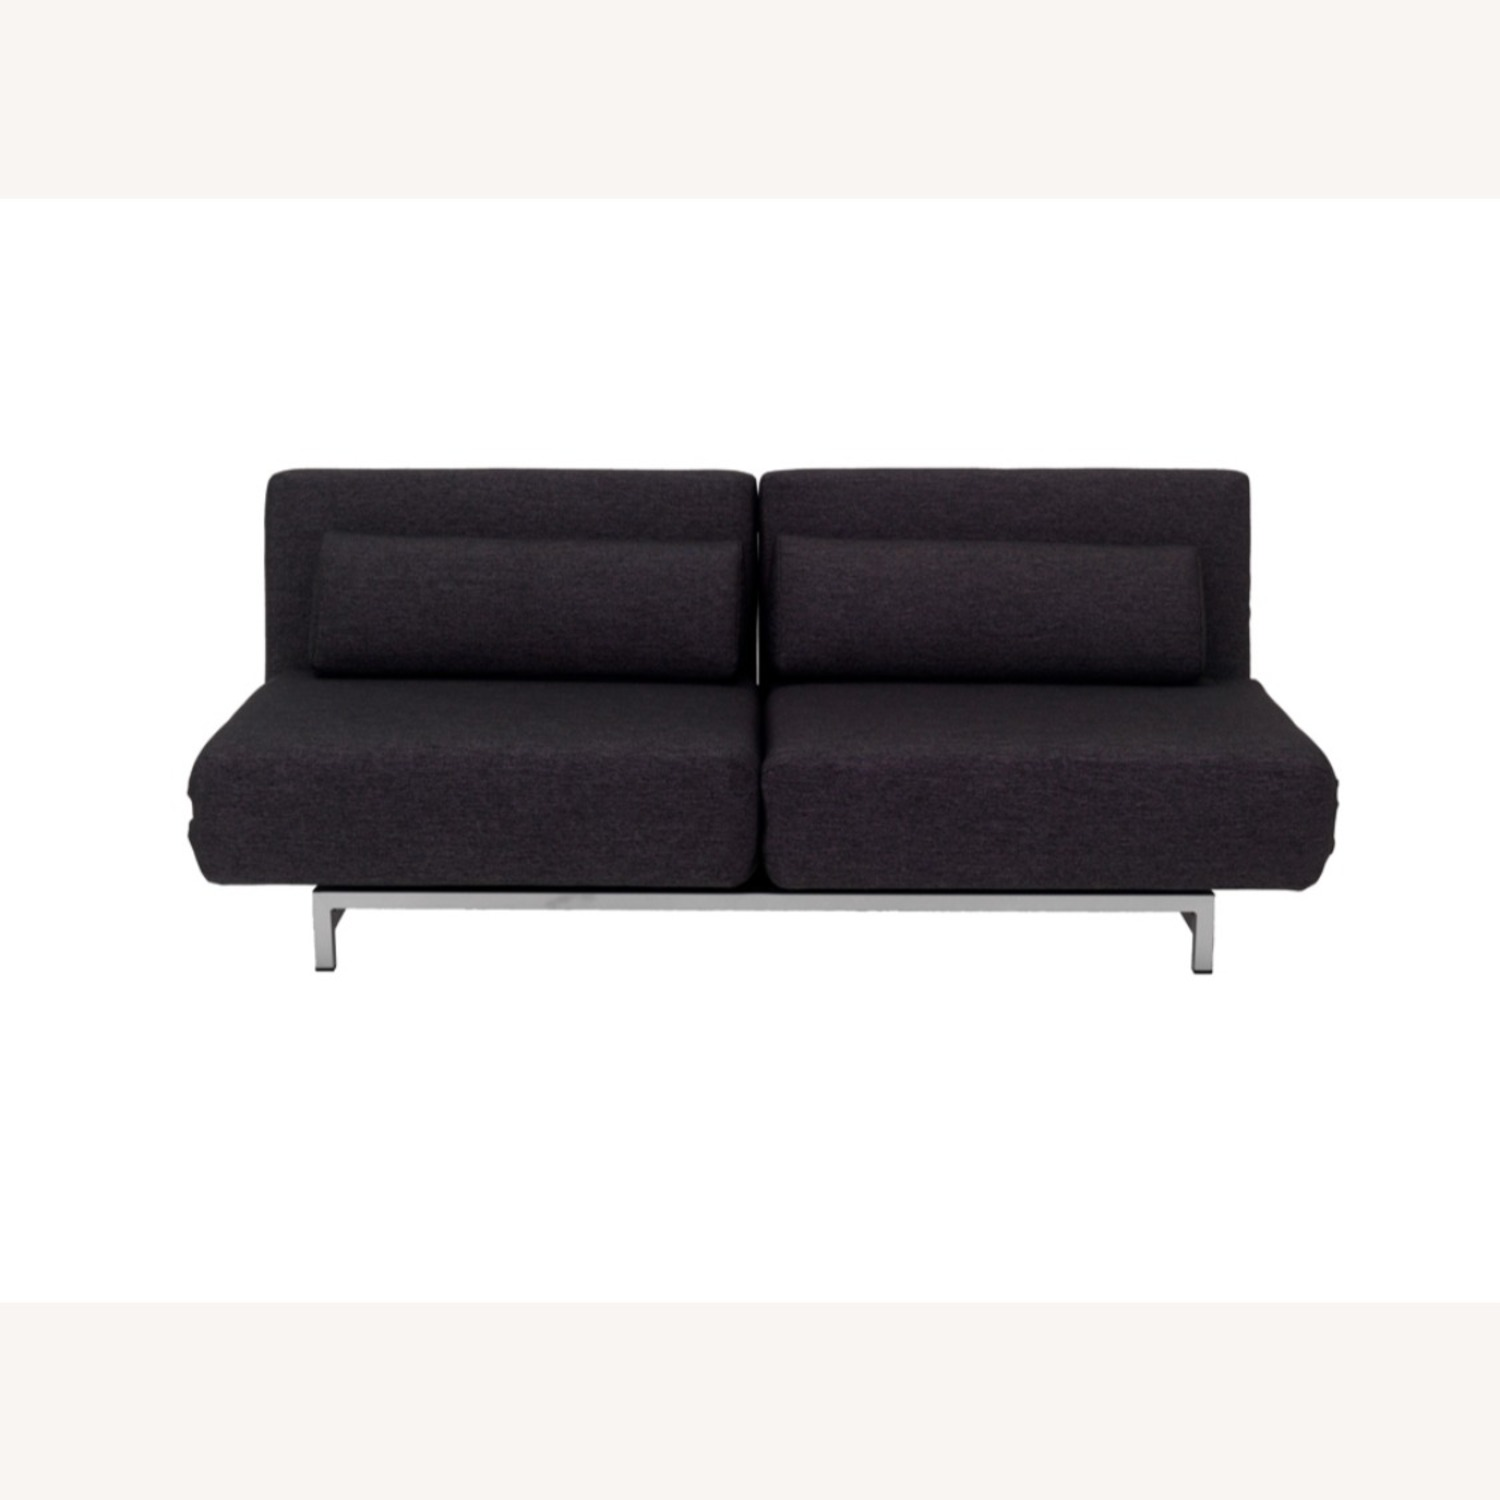 J&M Furniture Multi-Way Sleeper Sofa - image-4